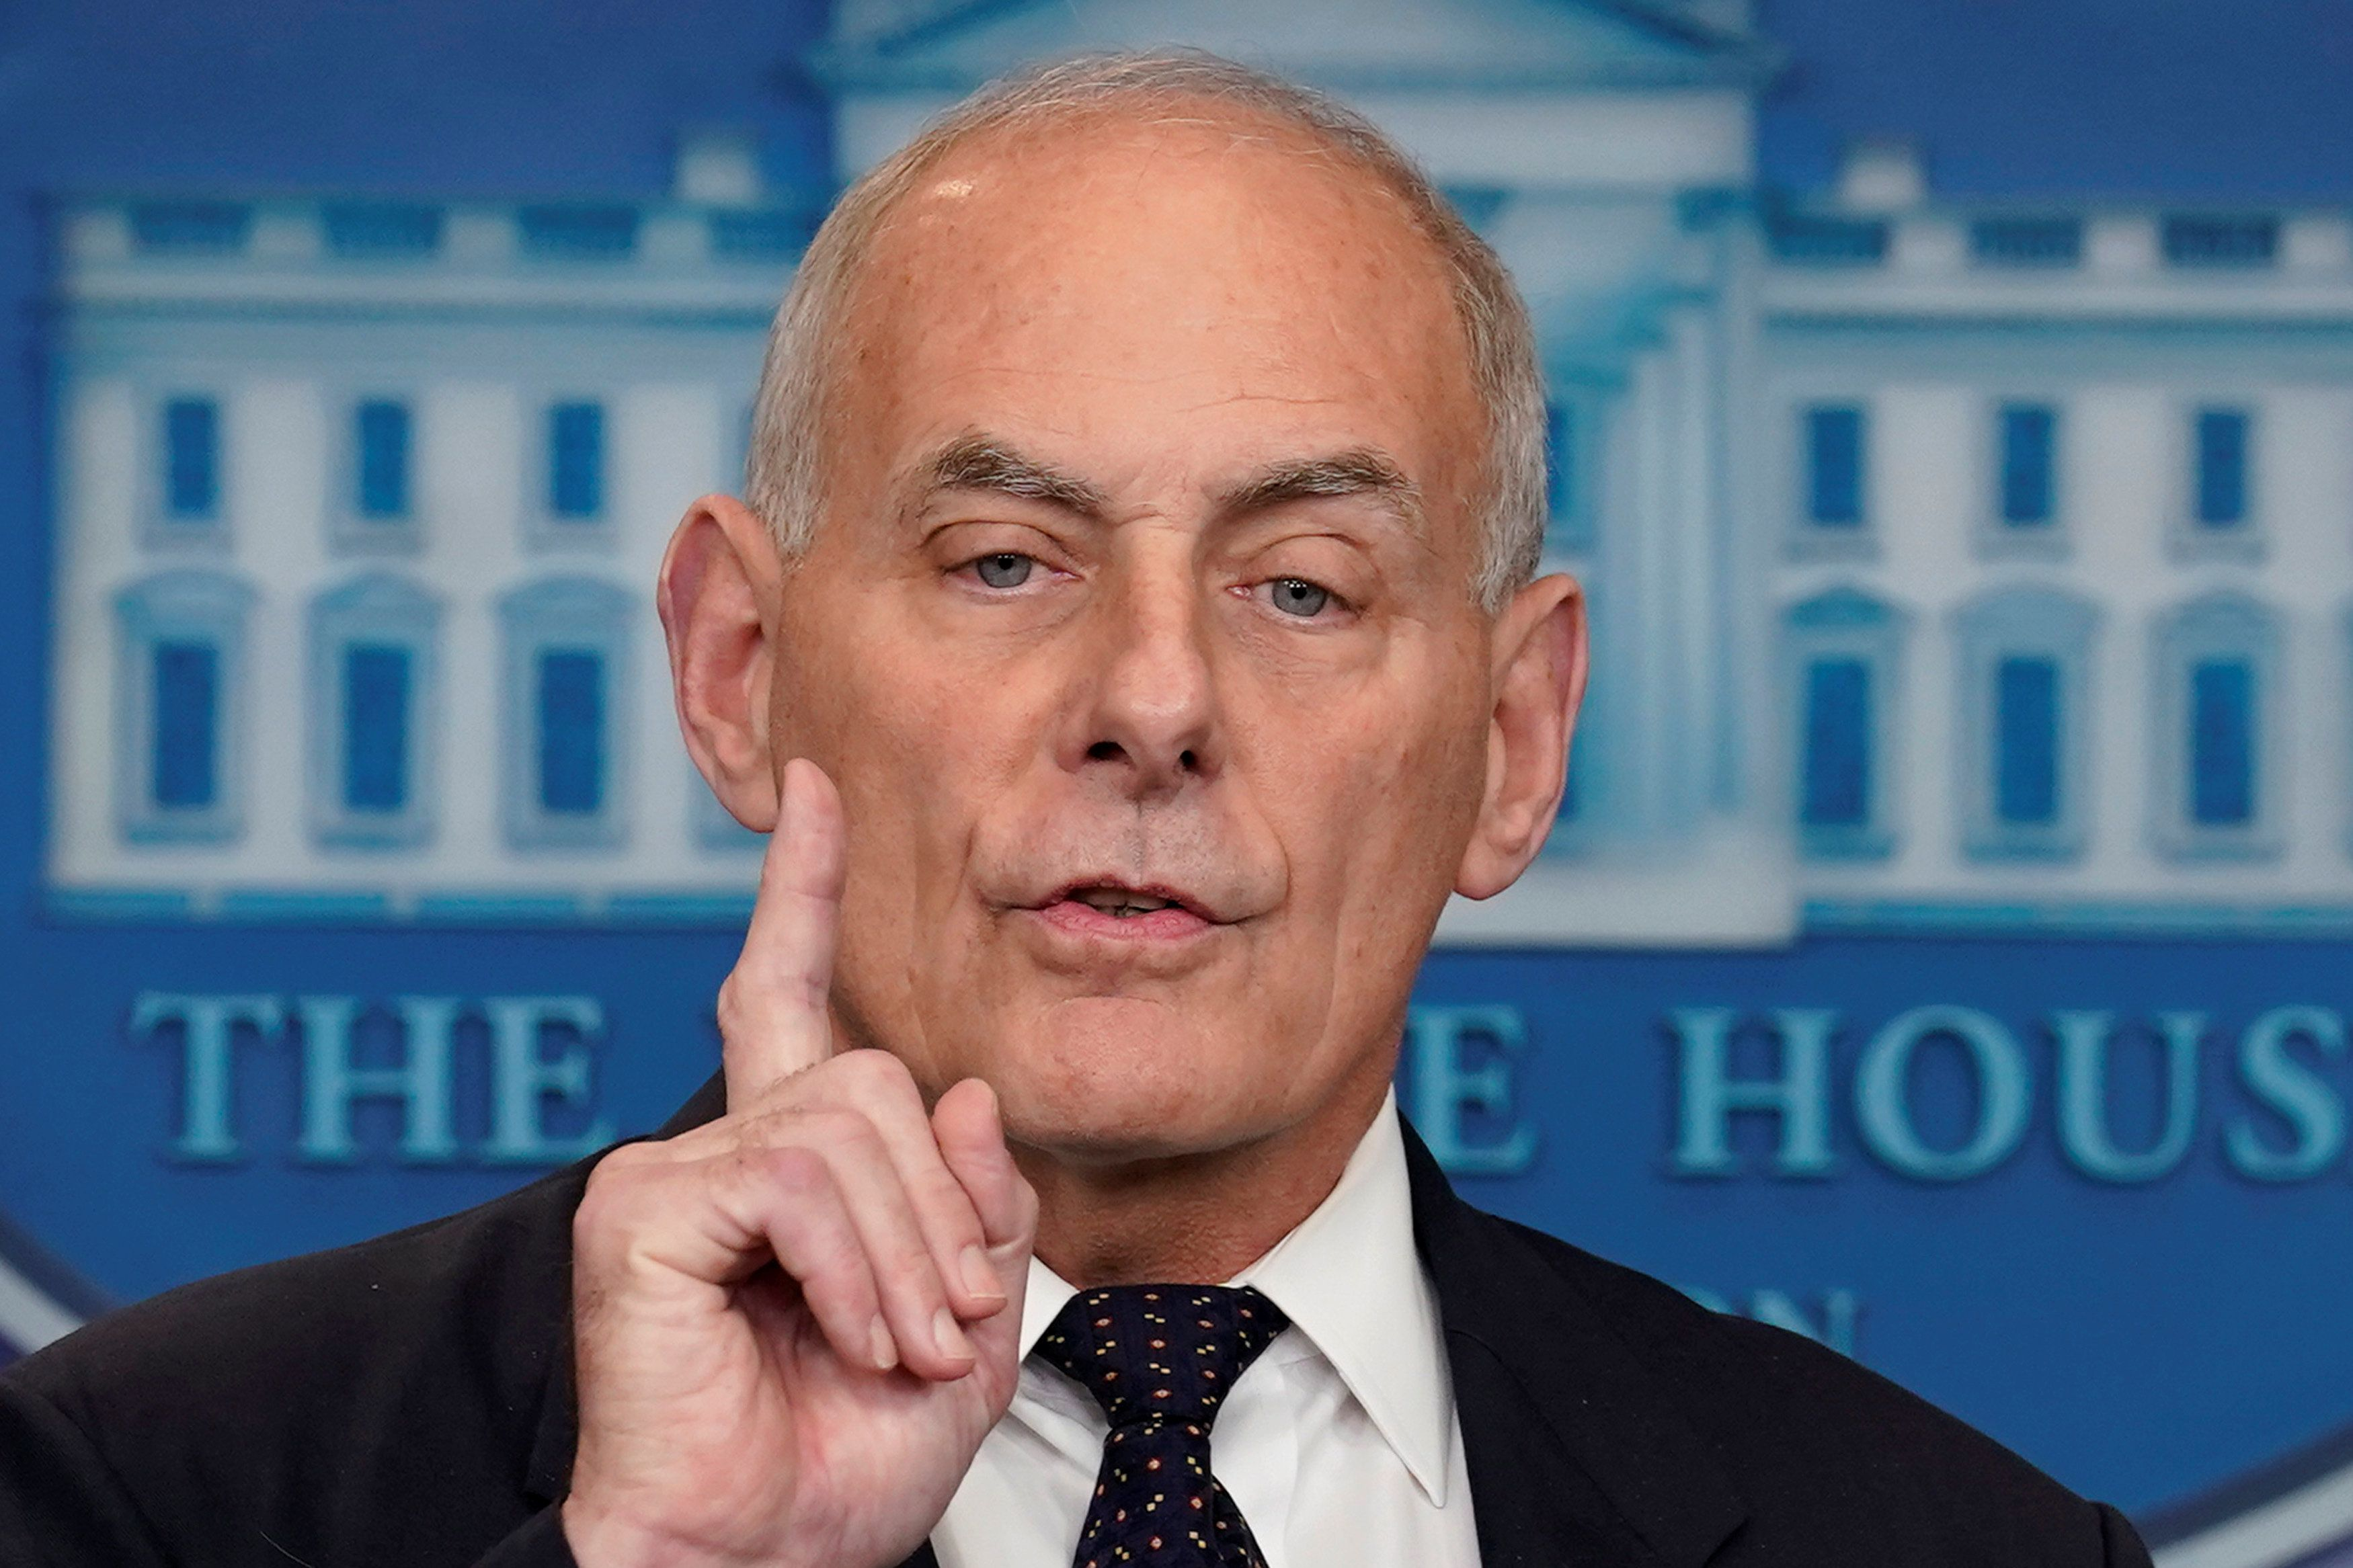 John Kelly Says Lack Of 'Compromise' Started Civil War, Defends Statues